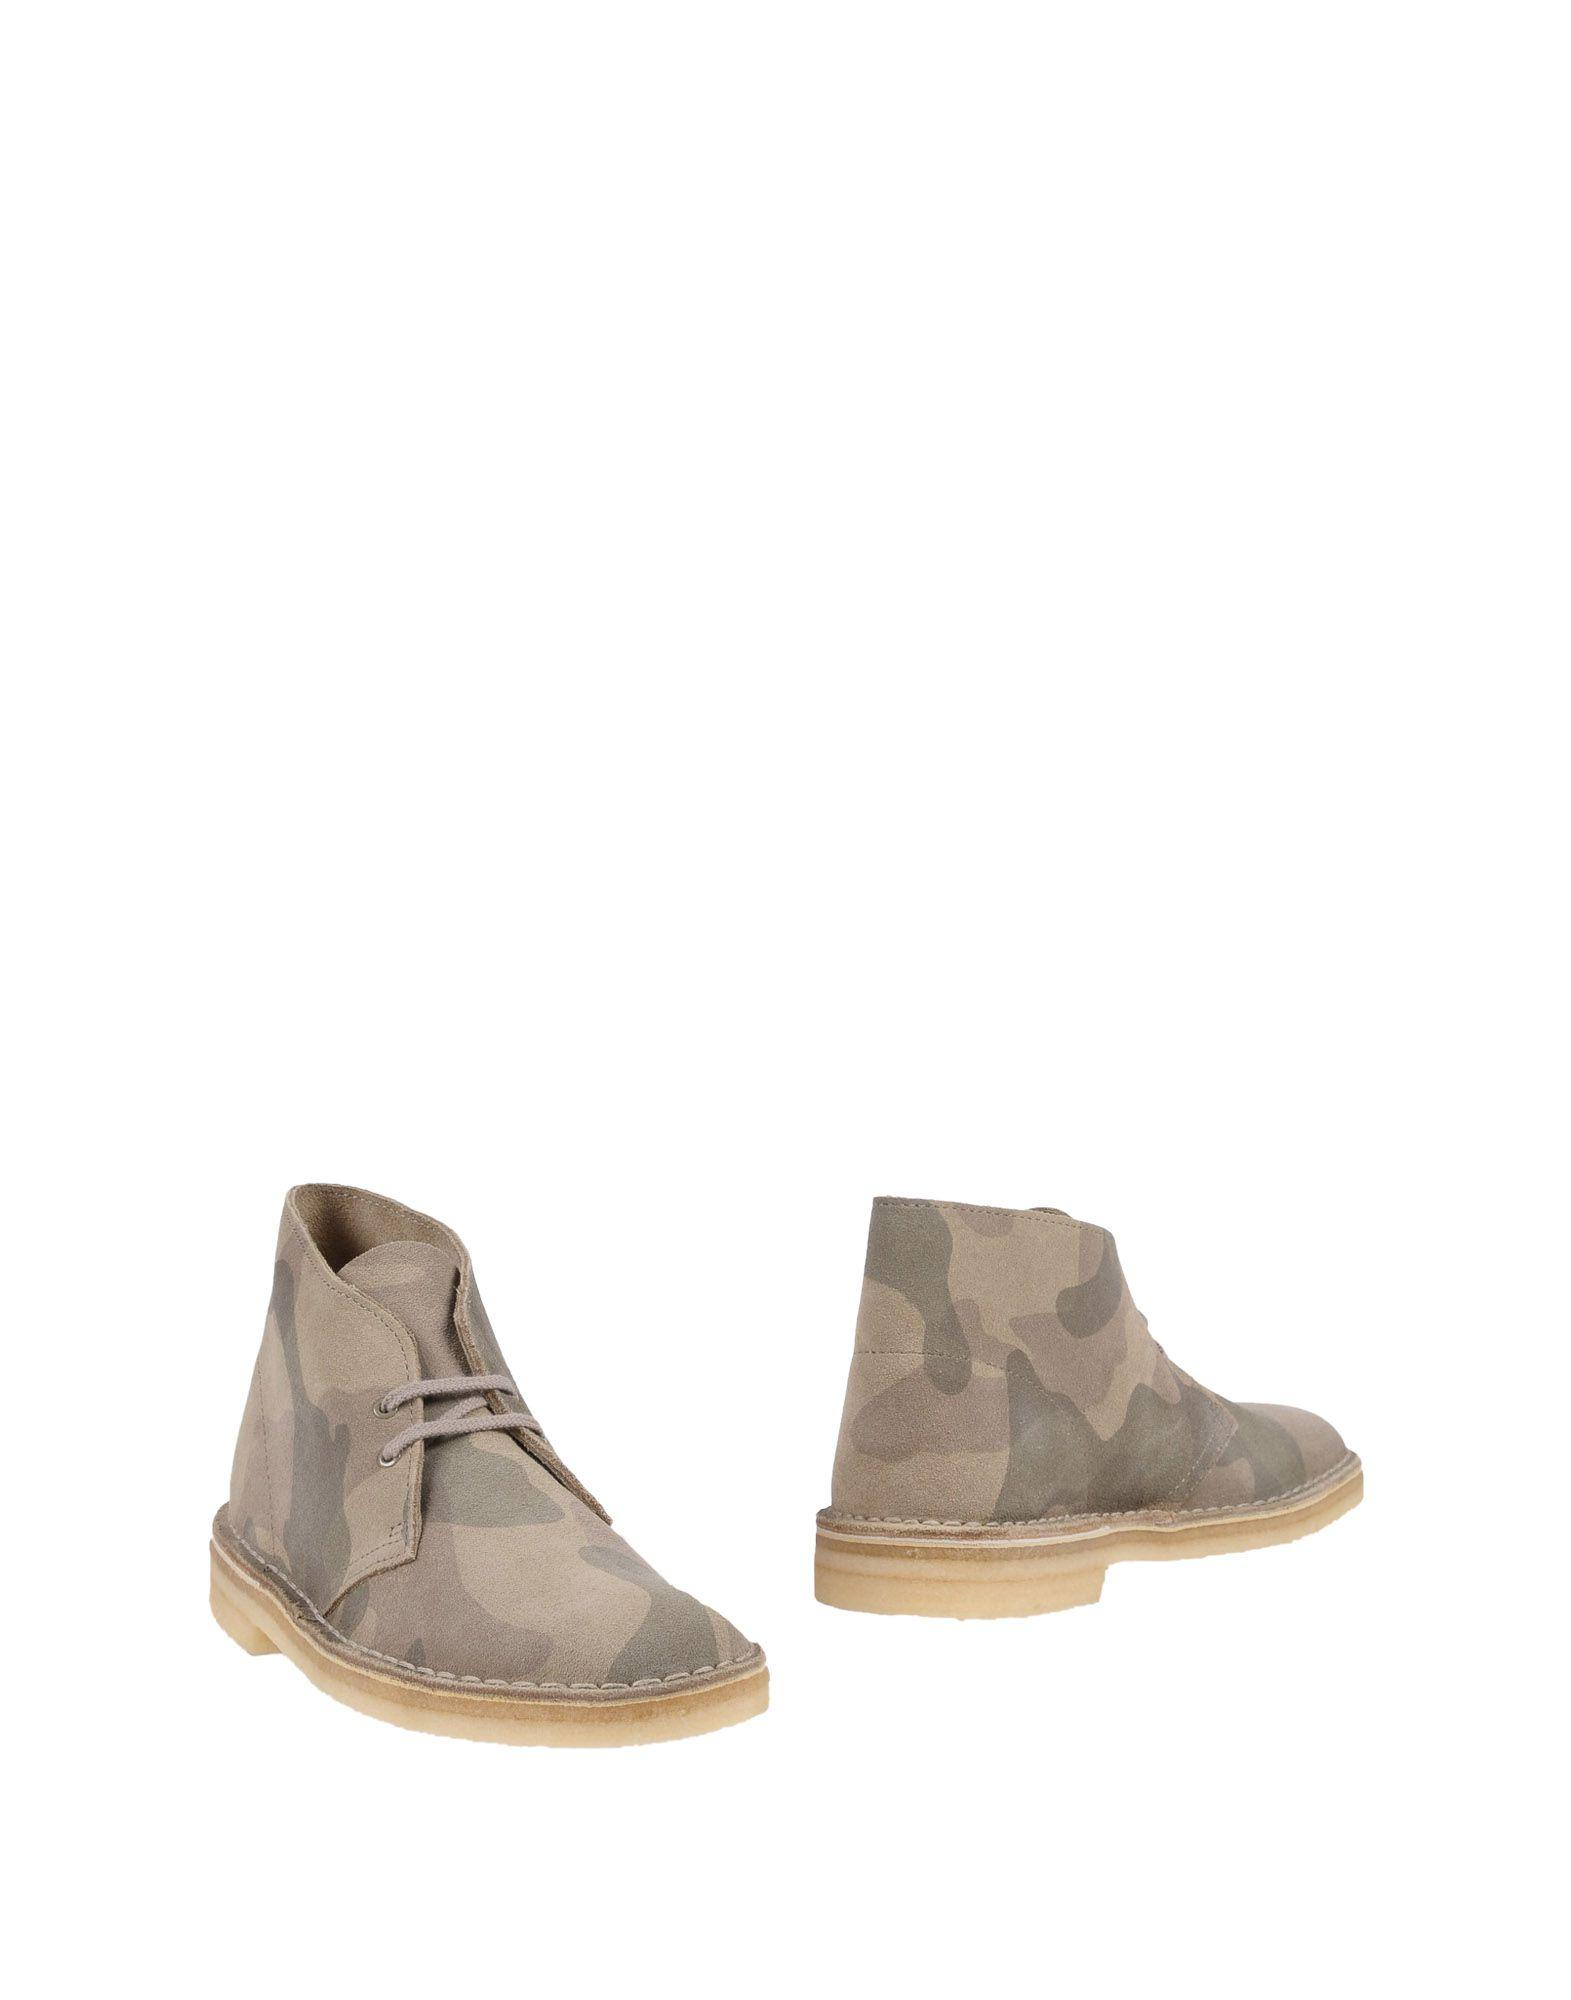 Clarks Originals Ankle Boots In Dove Grey